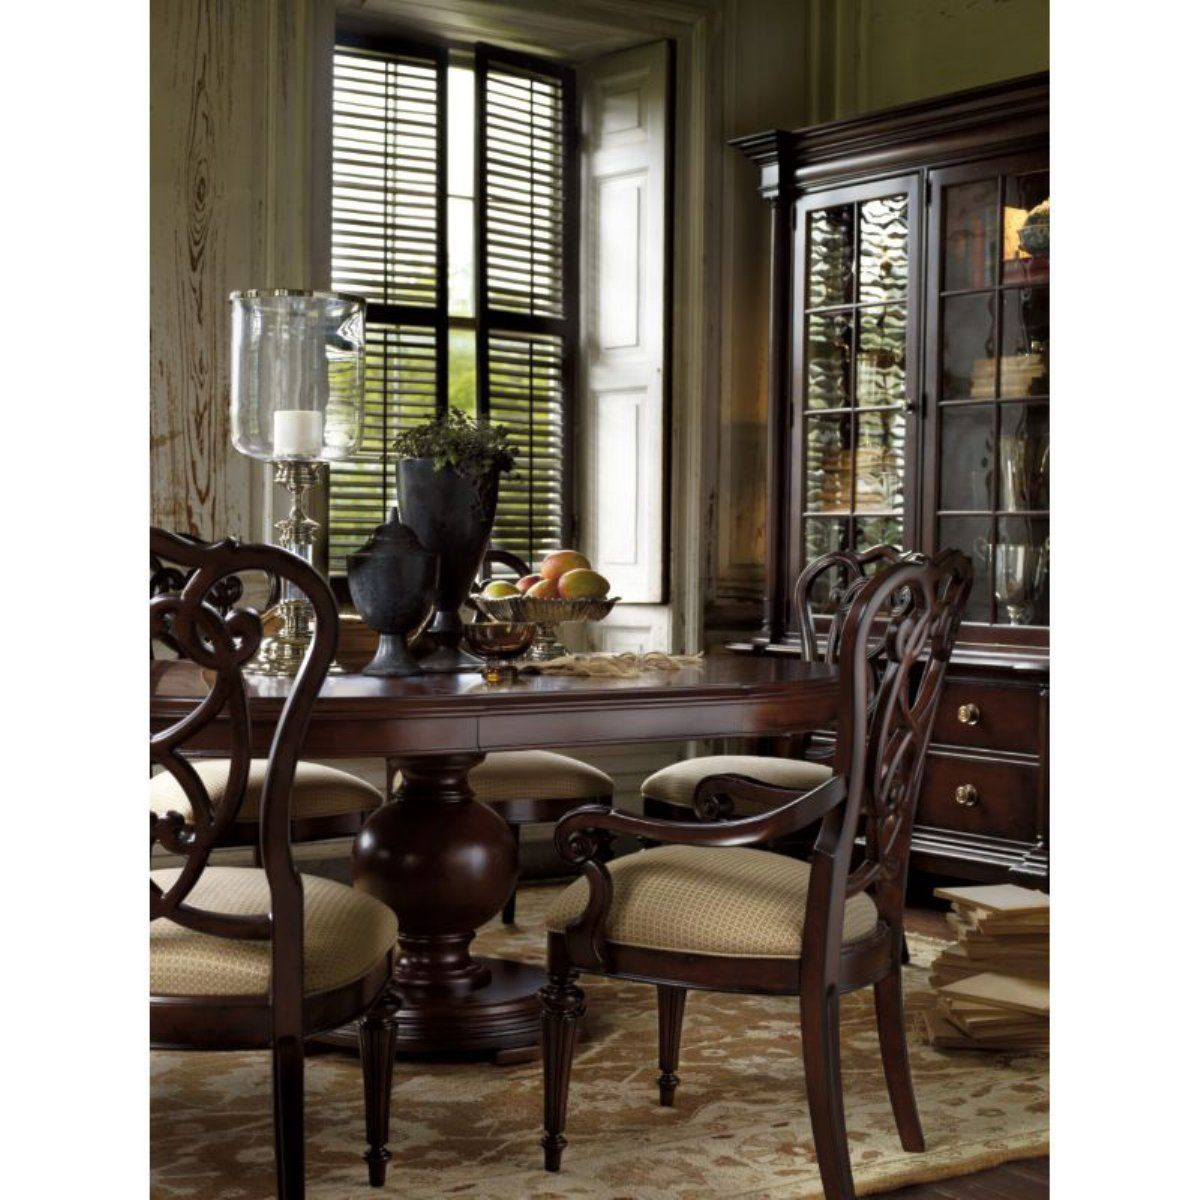 Stanley Furniture City Club 5Piece Private Room Pedestal Table Fascinating Stanley Furniture Dining Room Set Decorating Inspiration